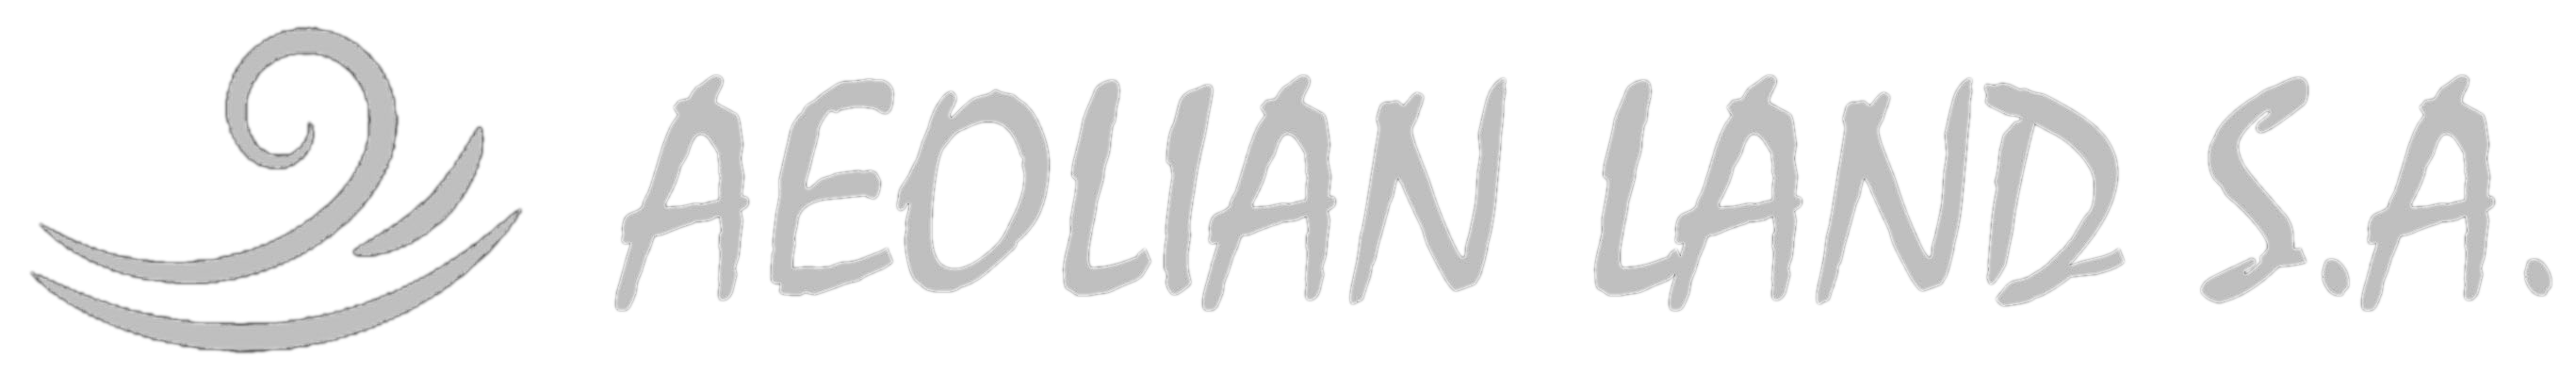 Monochrome logo of Aeolian Land S.A.